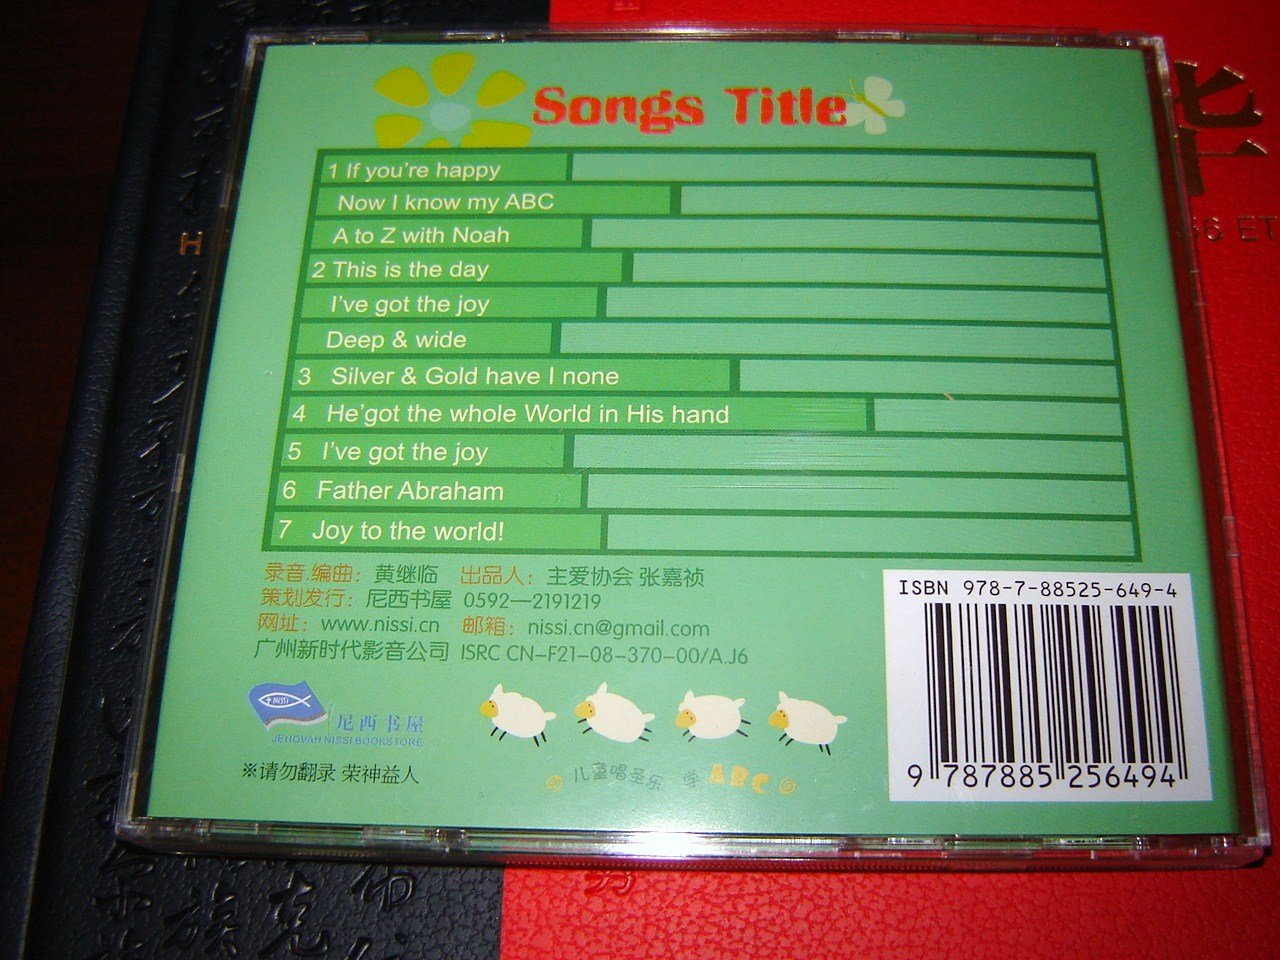 Children - Children Study ABC By Hymn / This Audio CD contains many